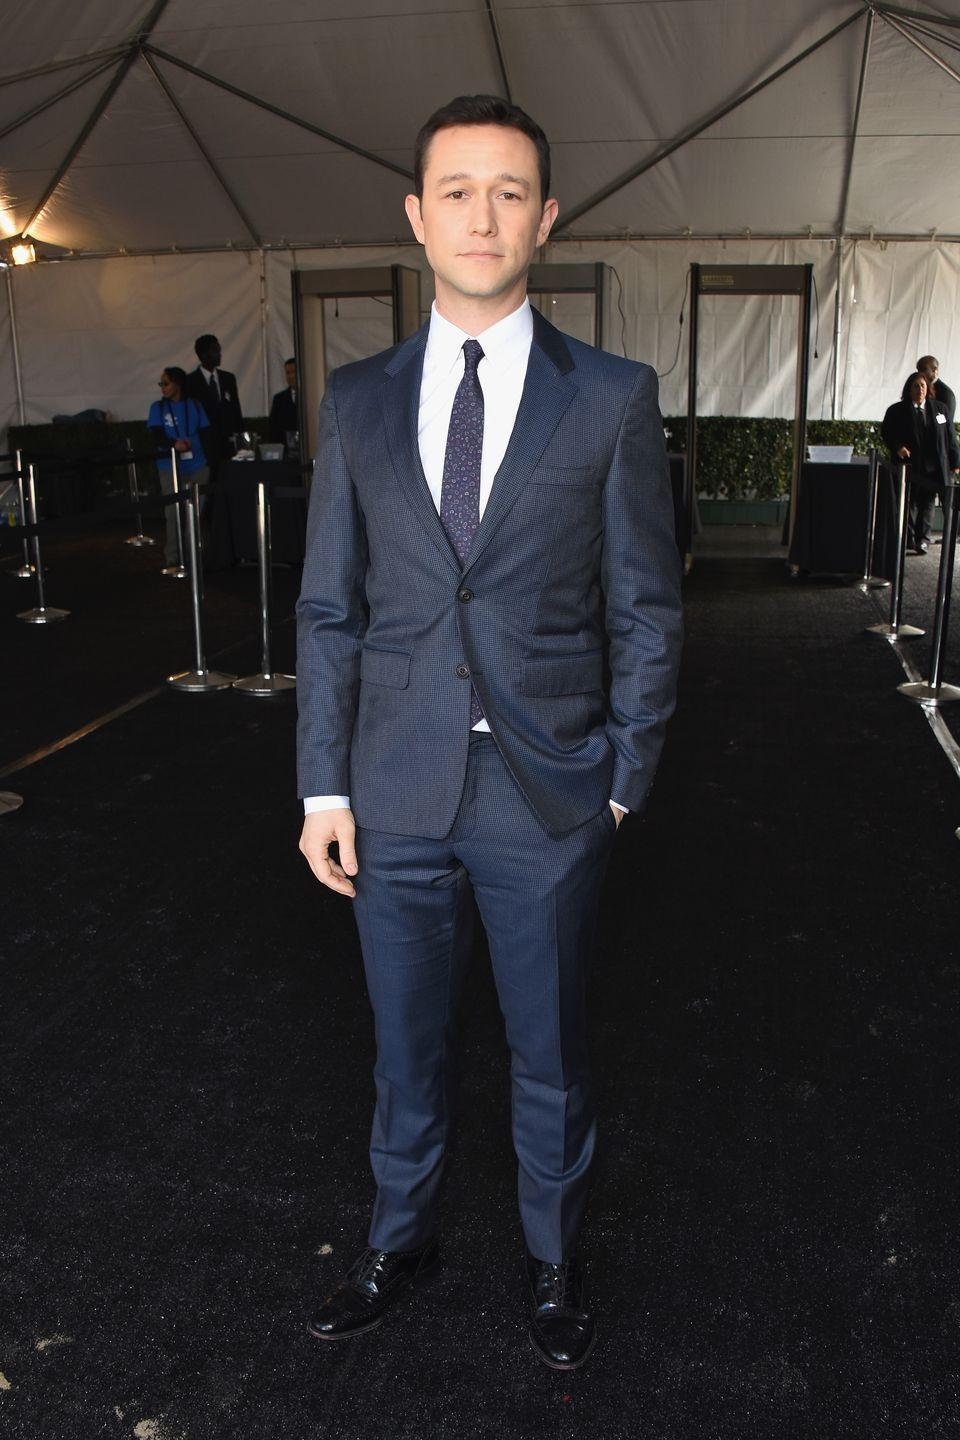 """<p>Joseph went on to star in indies and blockbusters alike, including <em>500 Days of Summer</em> and <em>Inception</em>, and now he's focused on <a href=""""https://hitrecord.org/about"""" rel=""""nofollow noopener"""" target=""""_blank"""" data-ylk=""""slk:Hit Record"""" class=""""link rapid-noclick-resp"""">Hit Record</a>, the company he founded that encourages collaboration between creatives. </p>"""